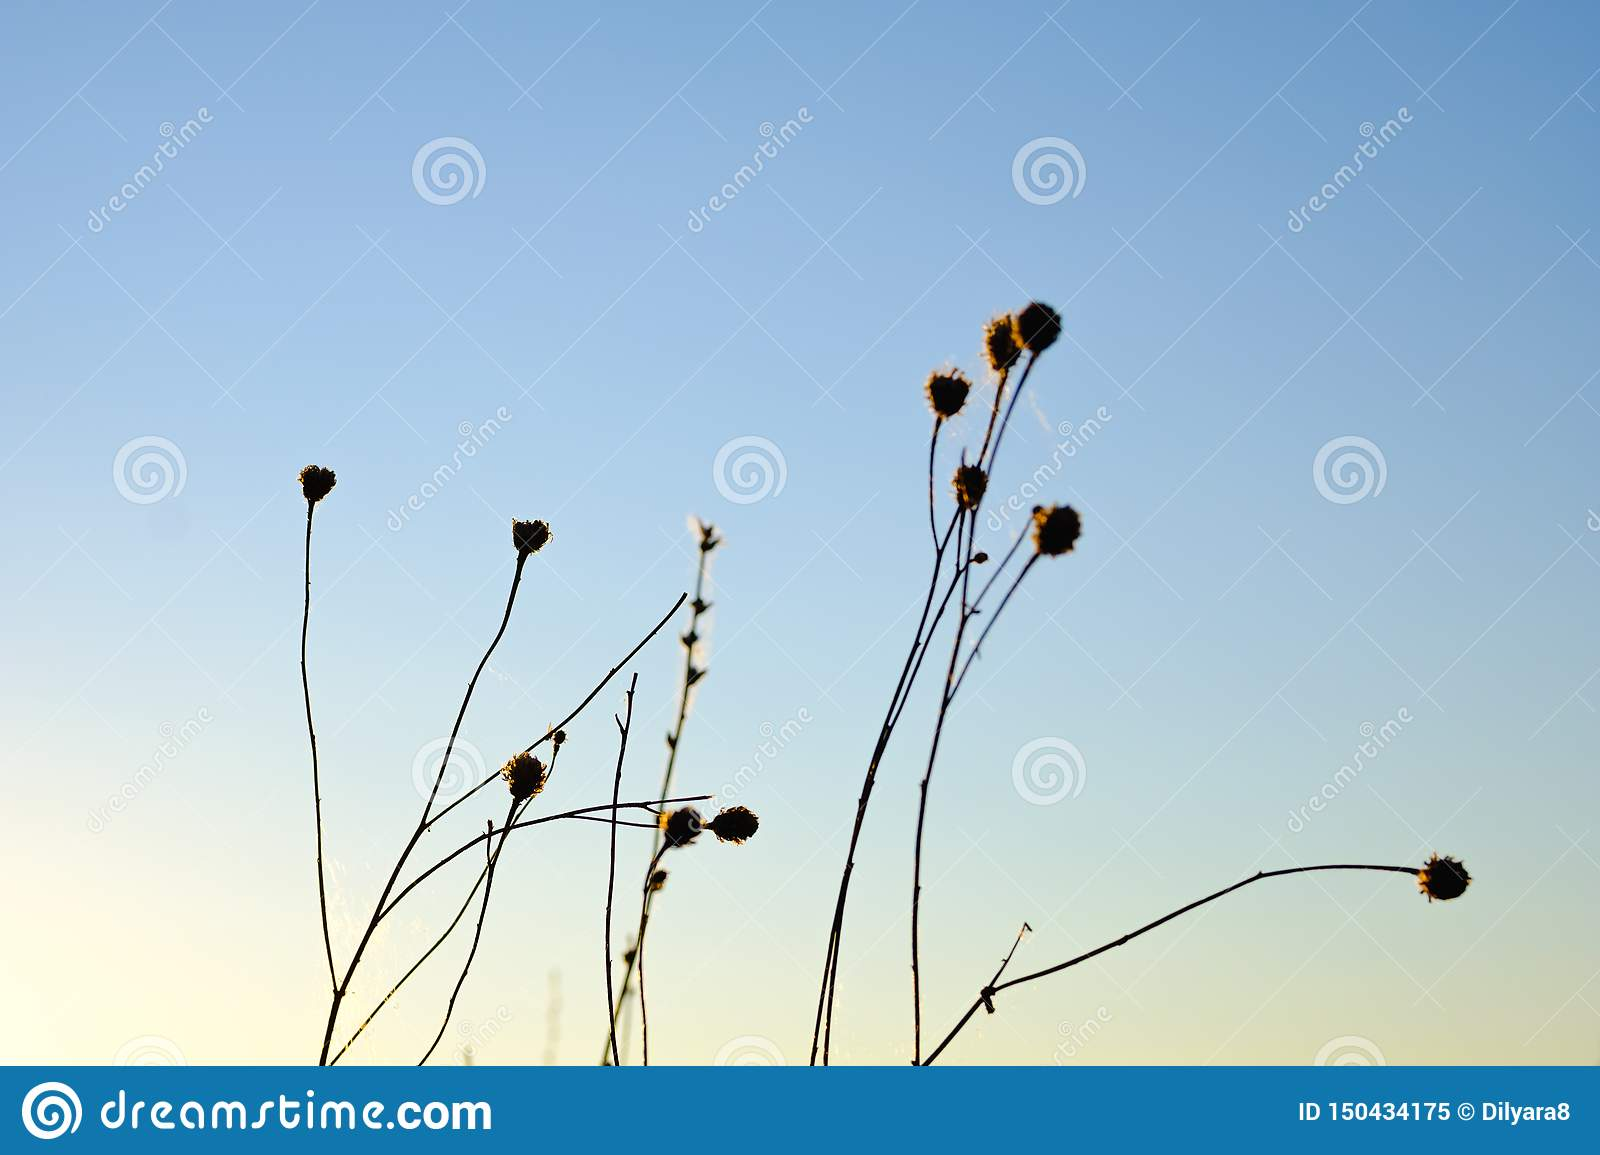 Silhouette of flowers